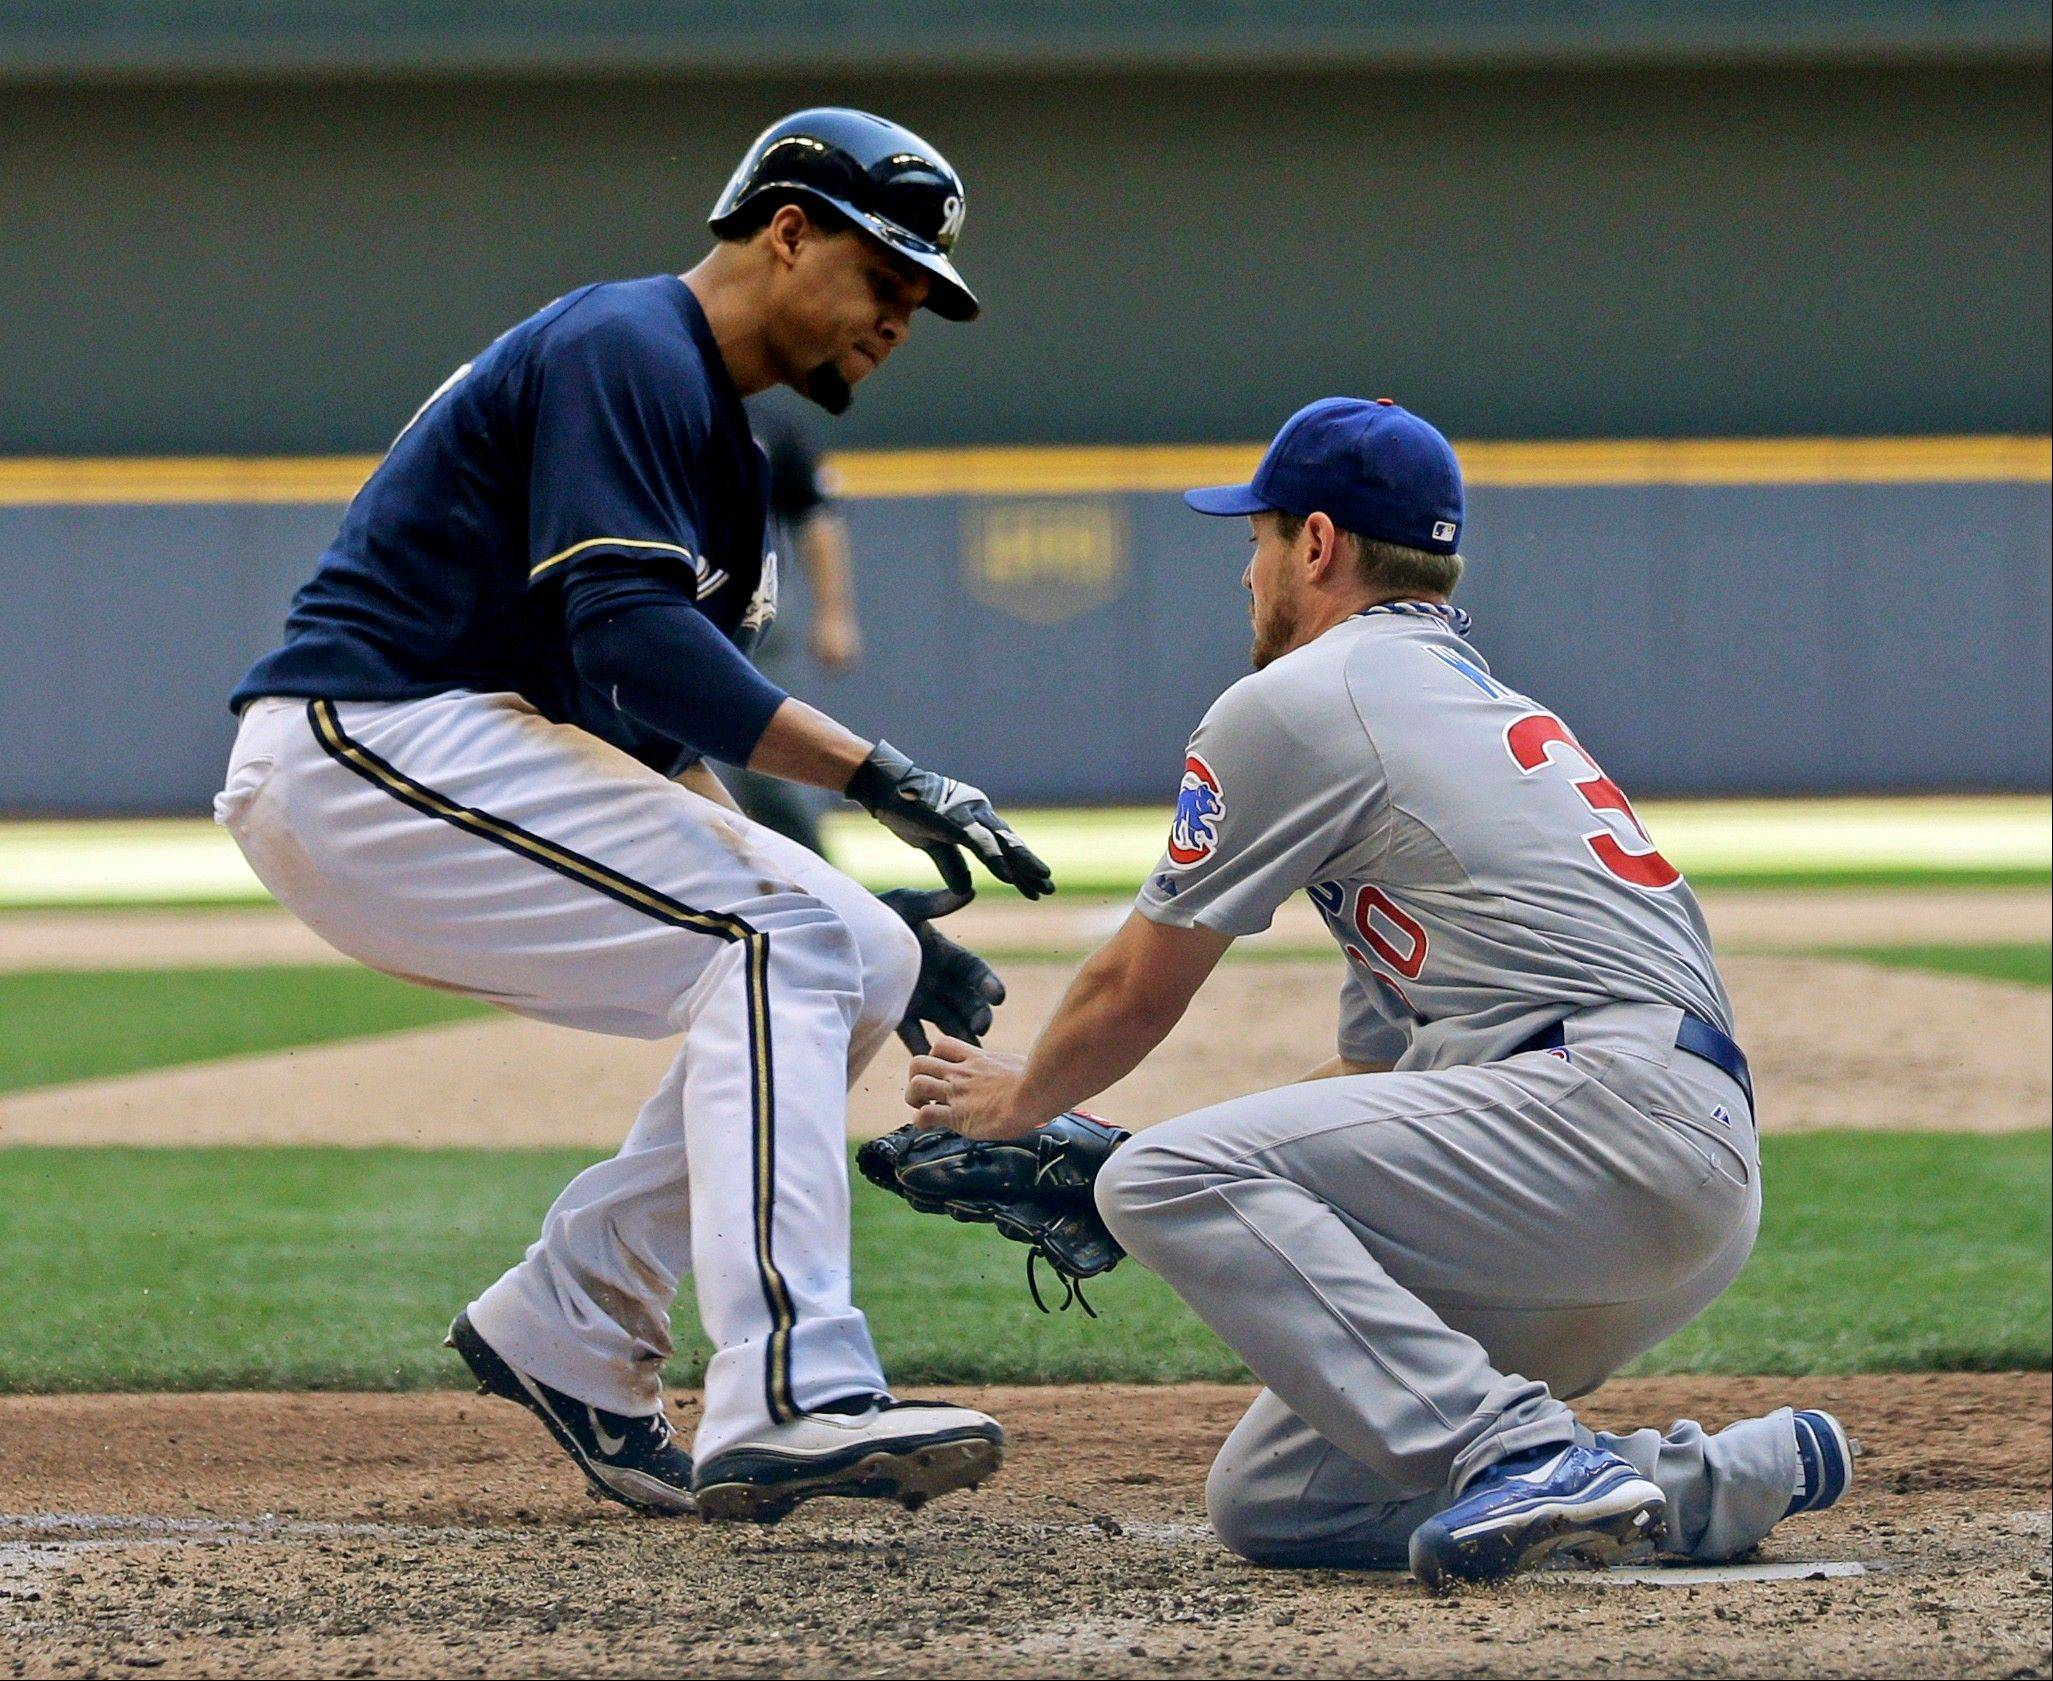 Milwaukee's Carlos Gomez is tagged out by Travis Wood during the seventh inning Wednesday in Milwaukee.